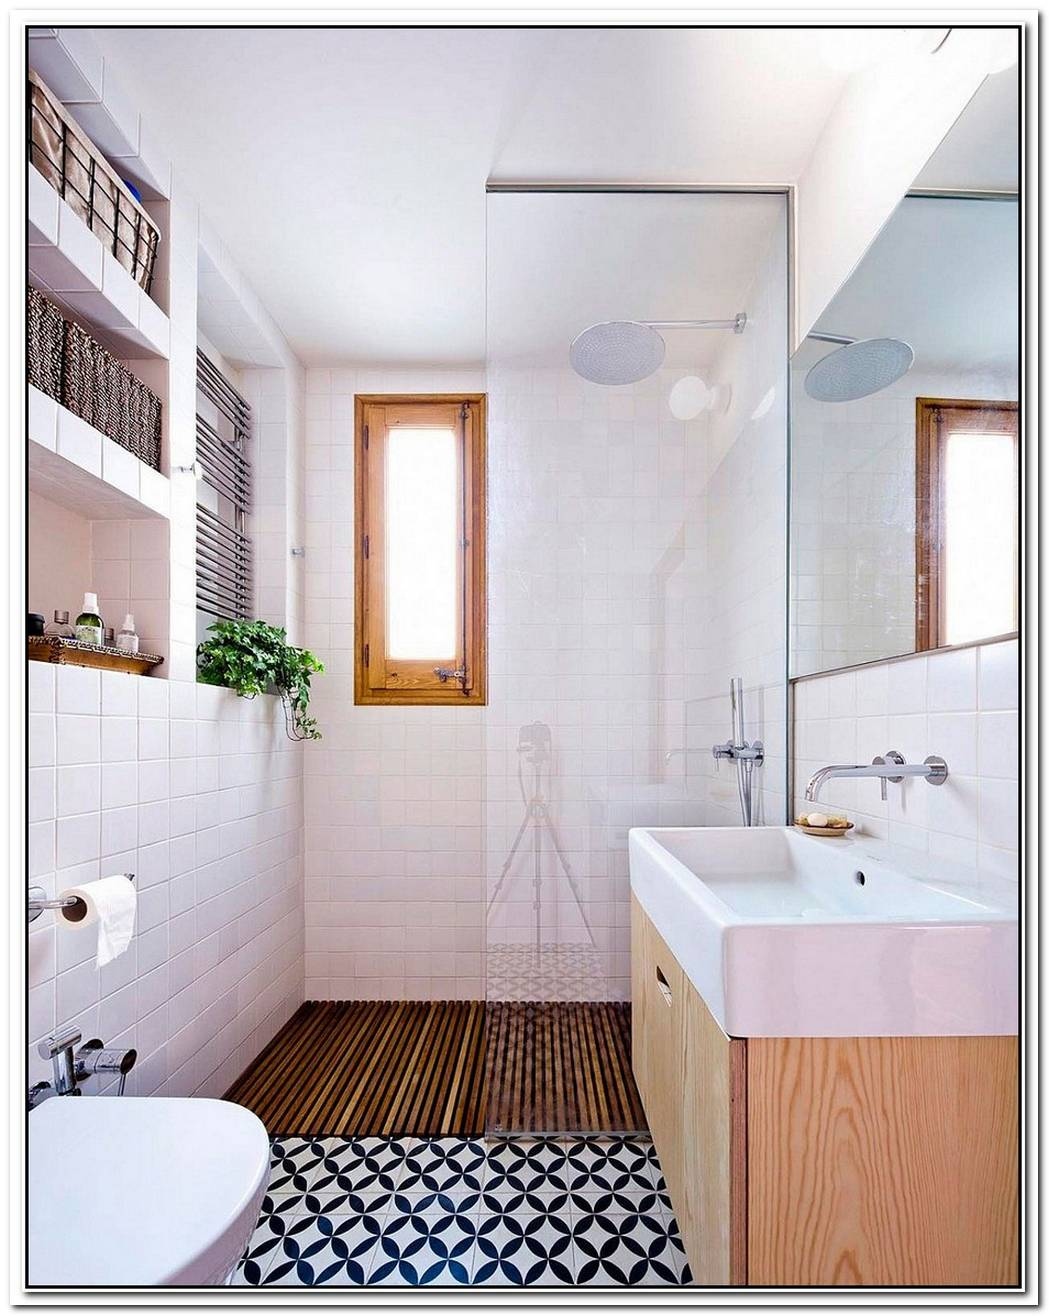 Gambar Bathroom Apartment